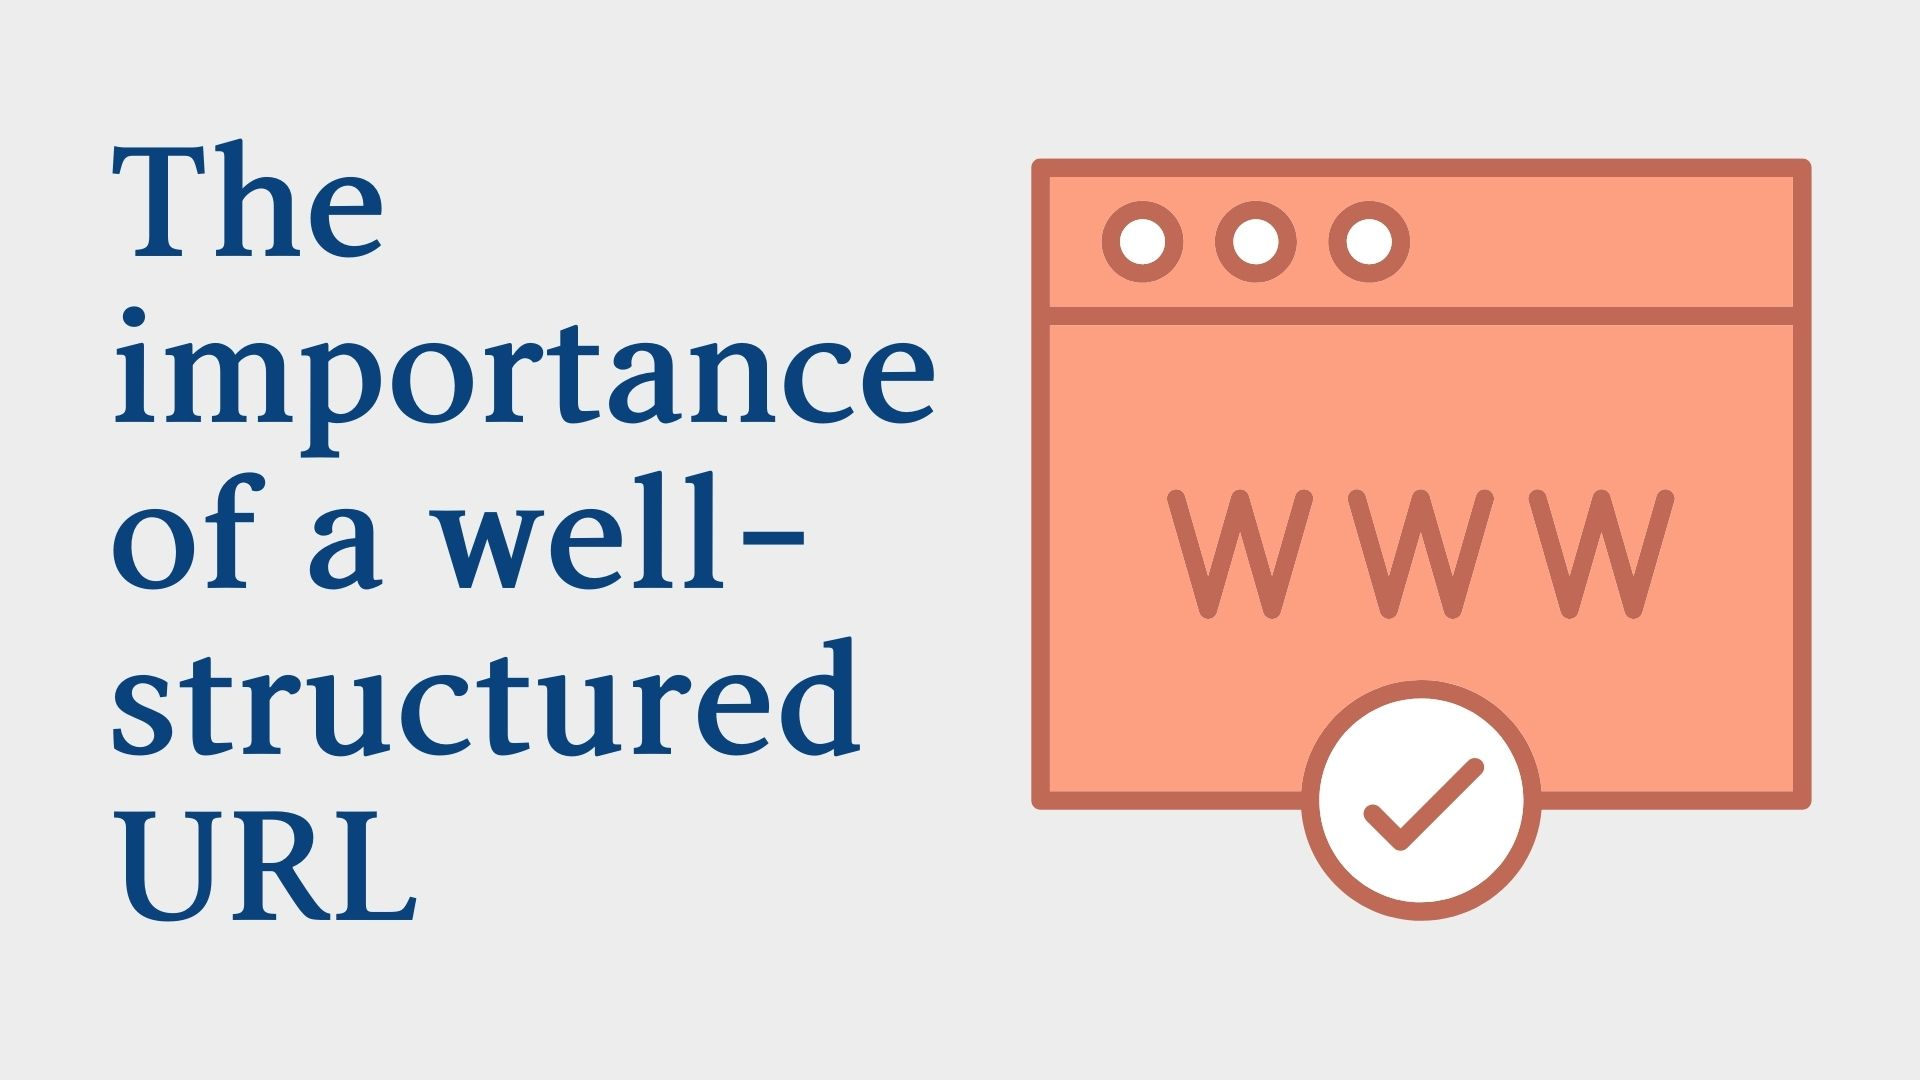 The importance of a well-structured URL